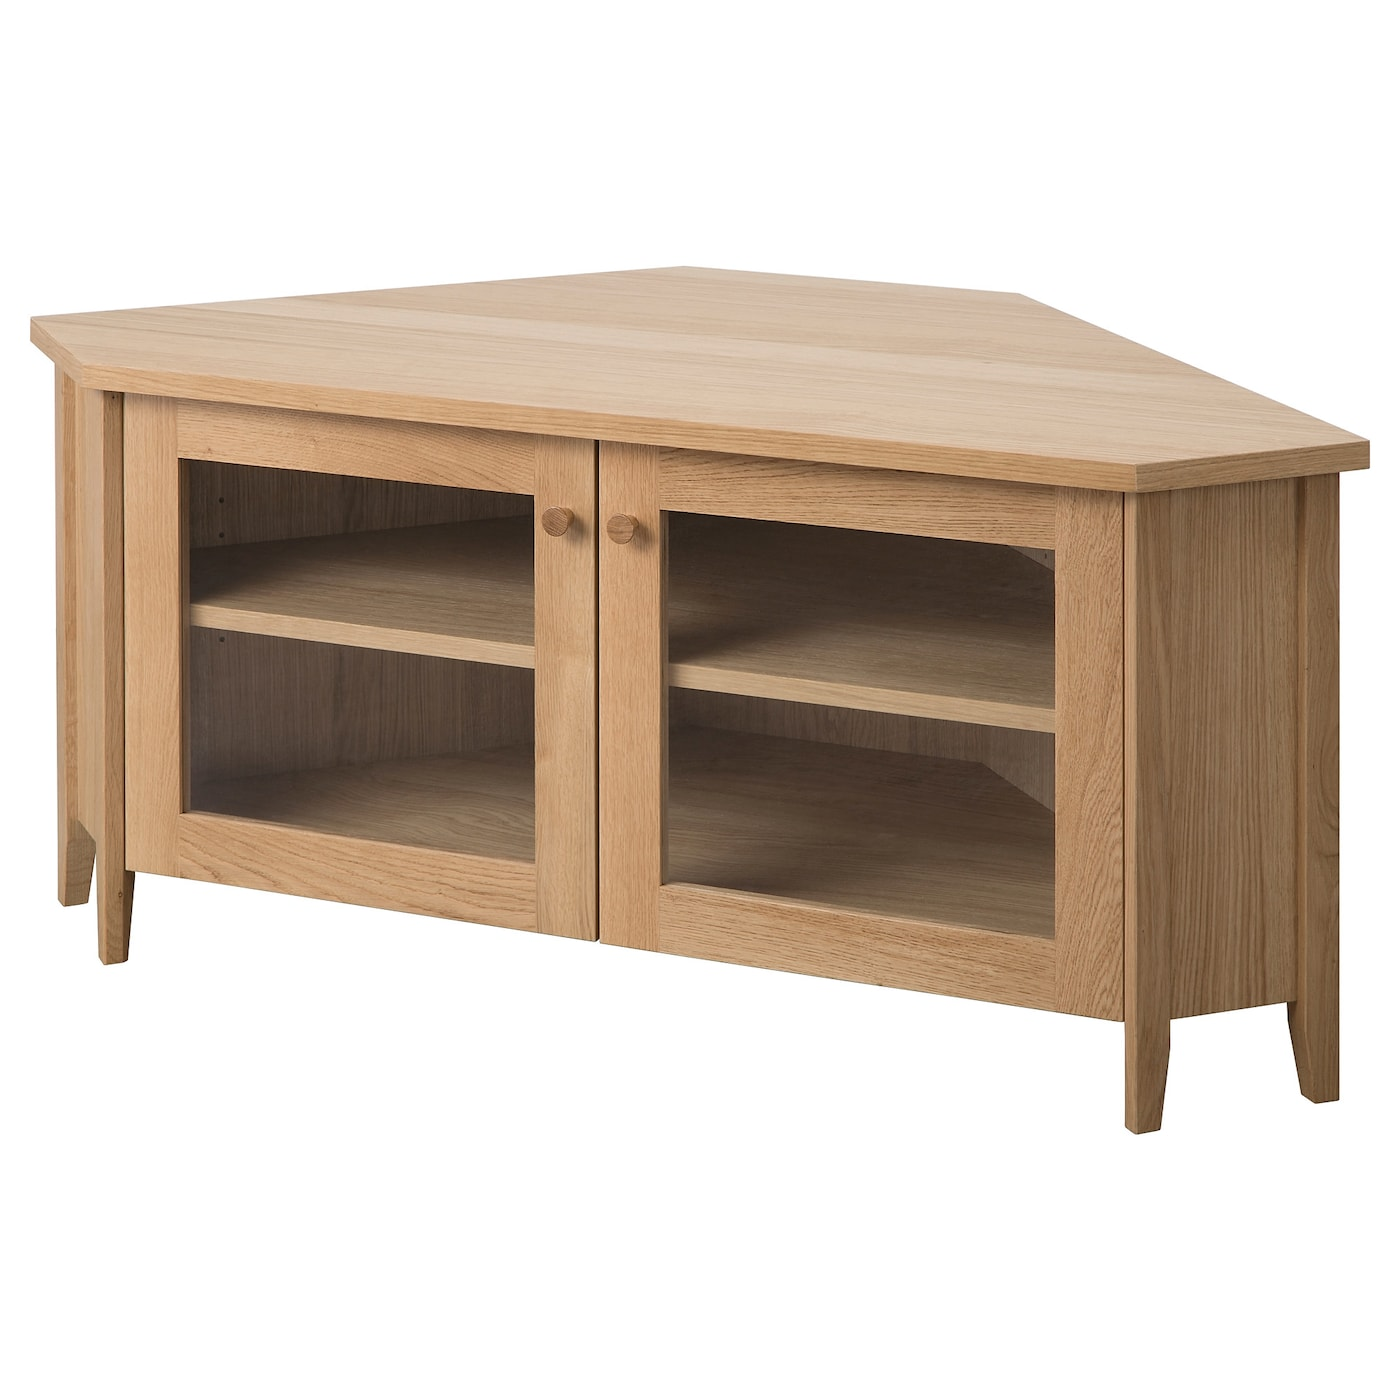 Tv stands media units ikea ireland dublin - Ikea table tv ...